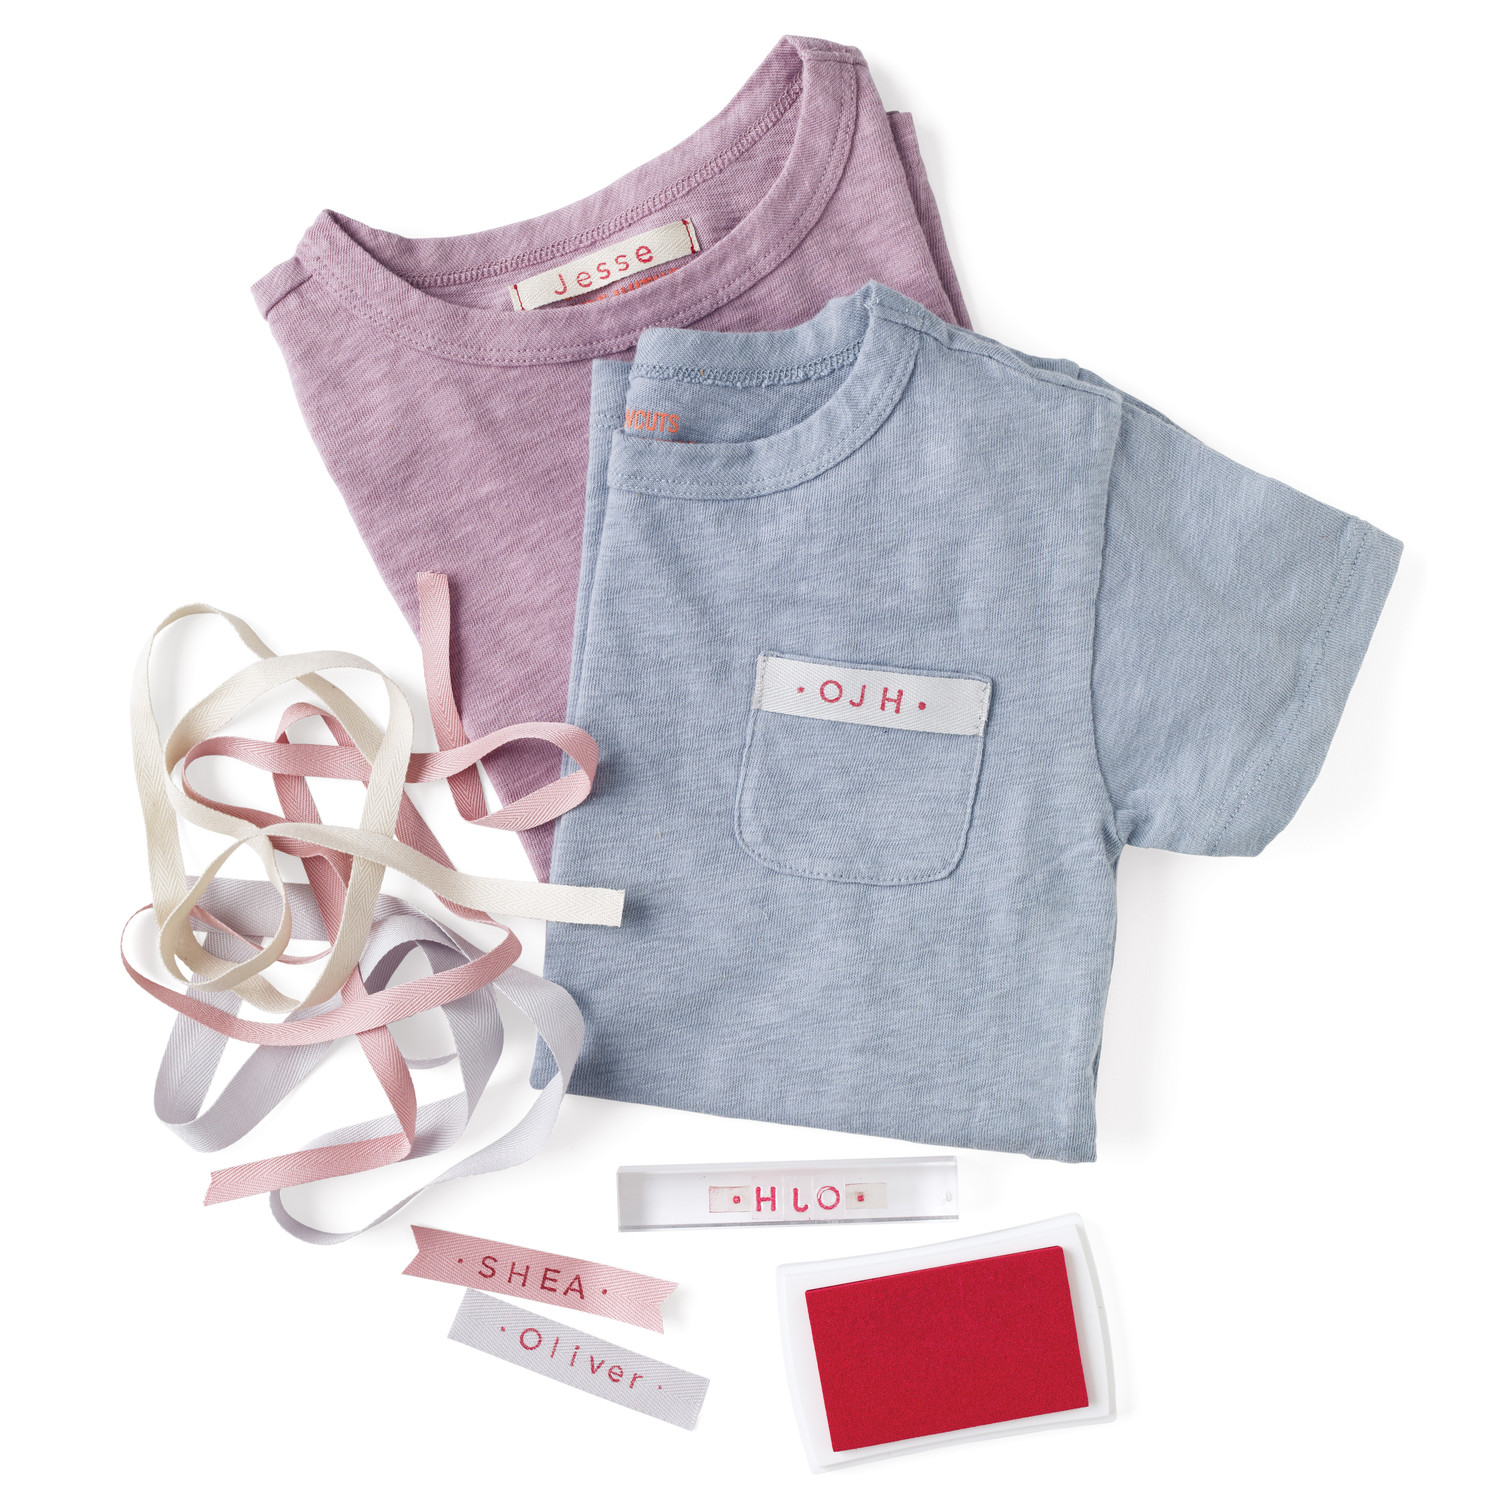 clothing name tags and monograms